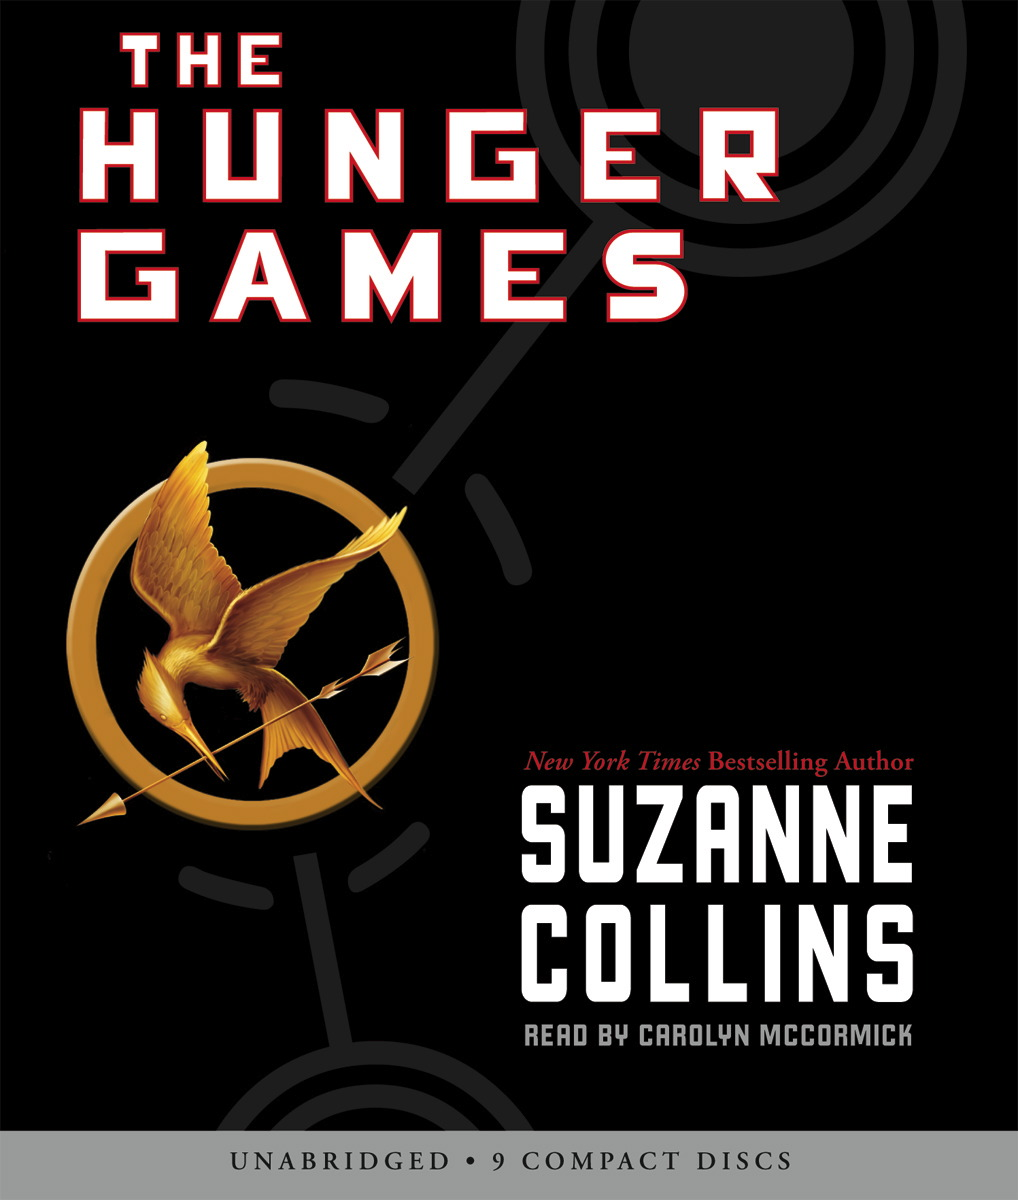 Dear Thursday: THE HUNGER GAMES by Suzanne Collins [Book 1 of 2011]